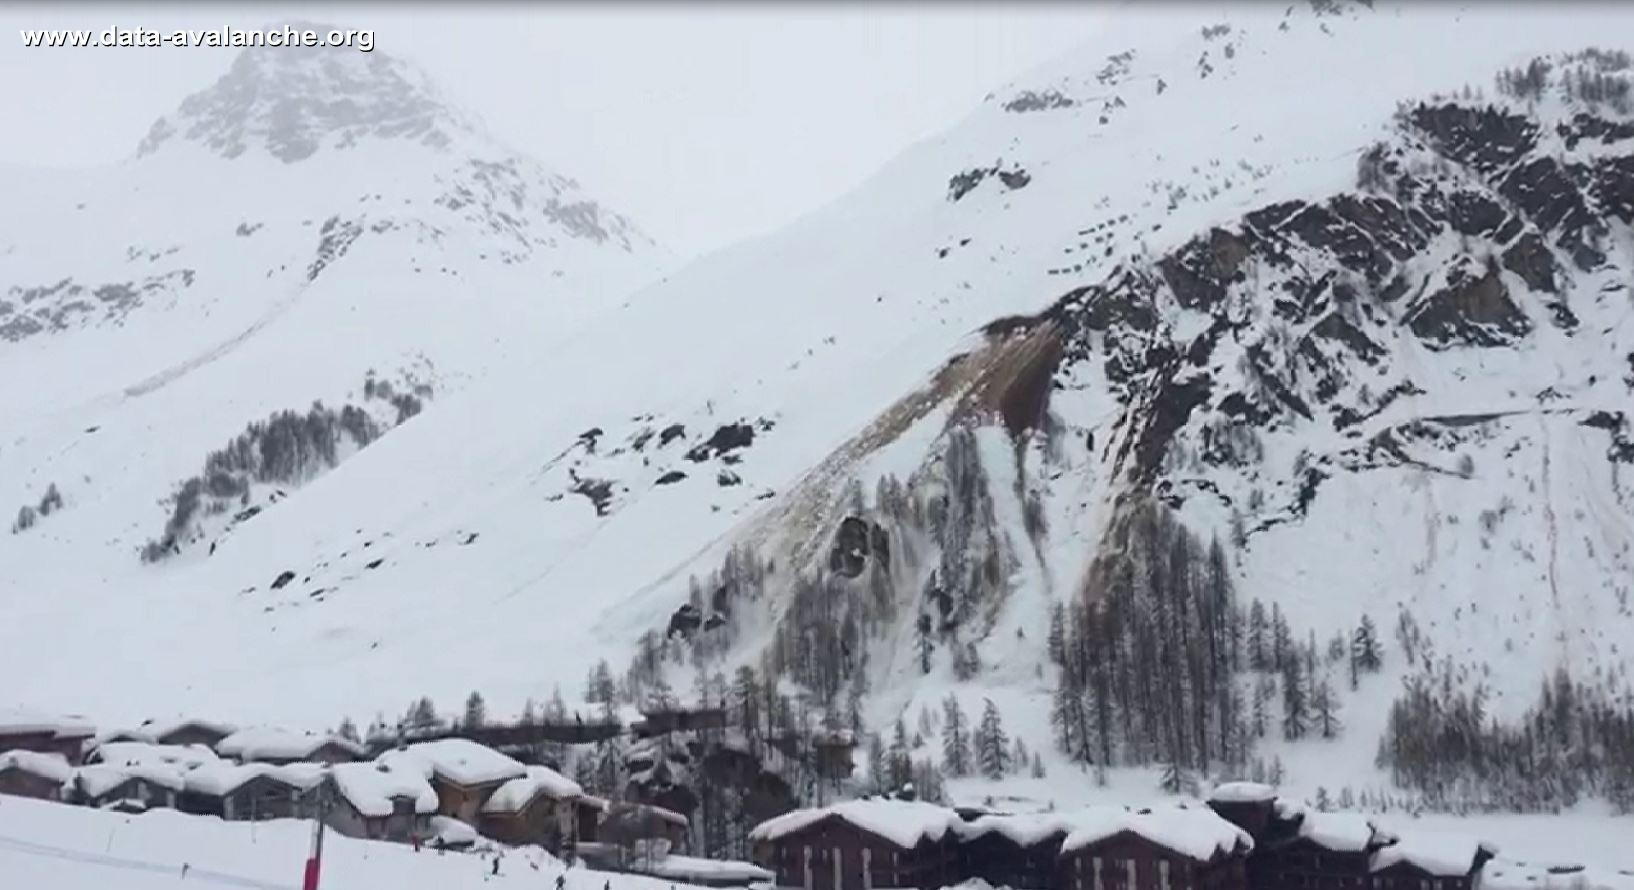 Avalanche Haute Tarentaise, secteur Bellevarde - Photo 1